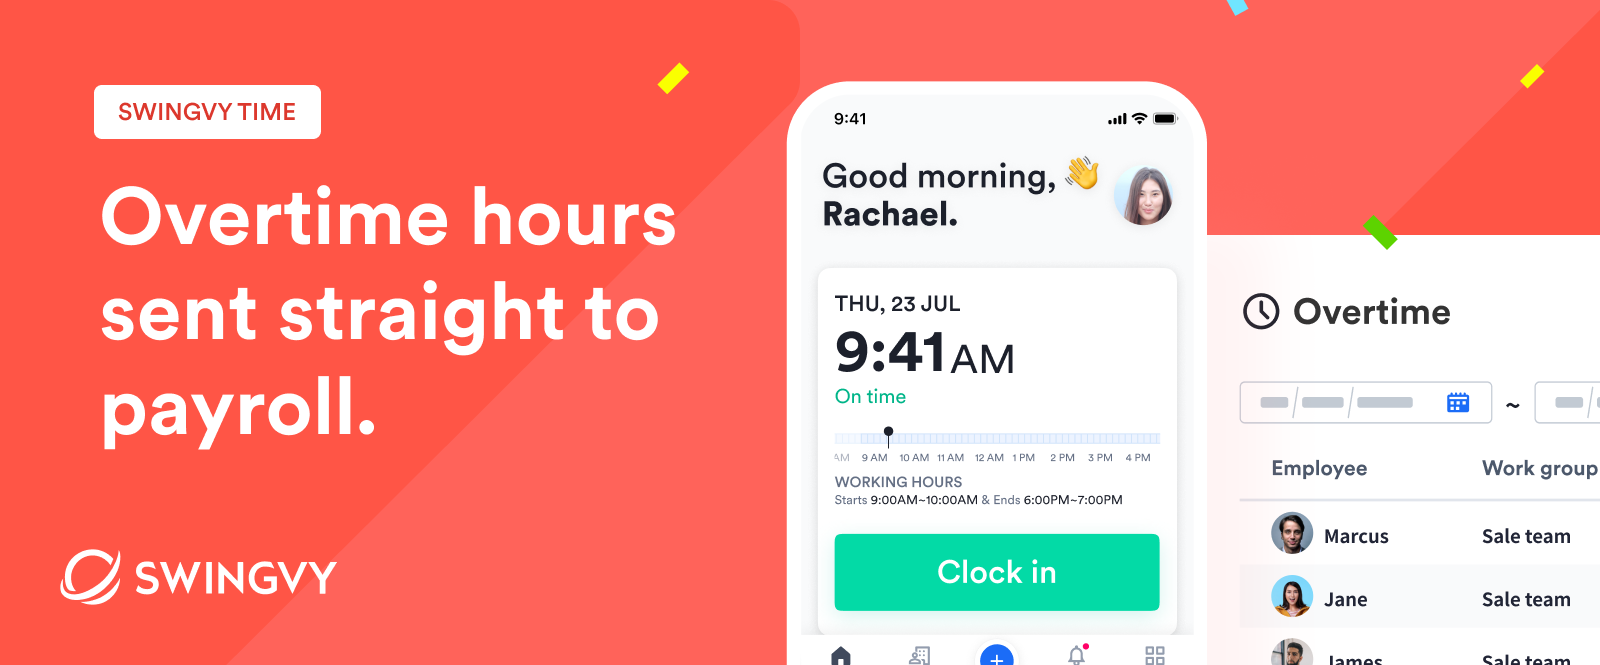 Swingvy Time | Send overtime hours straight to payroll